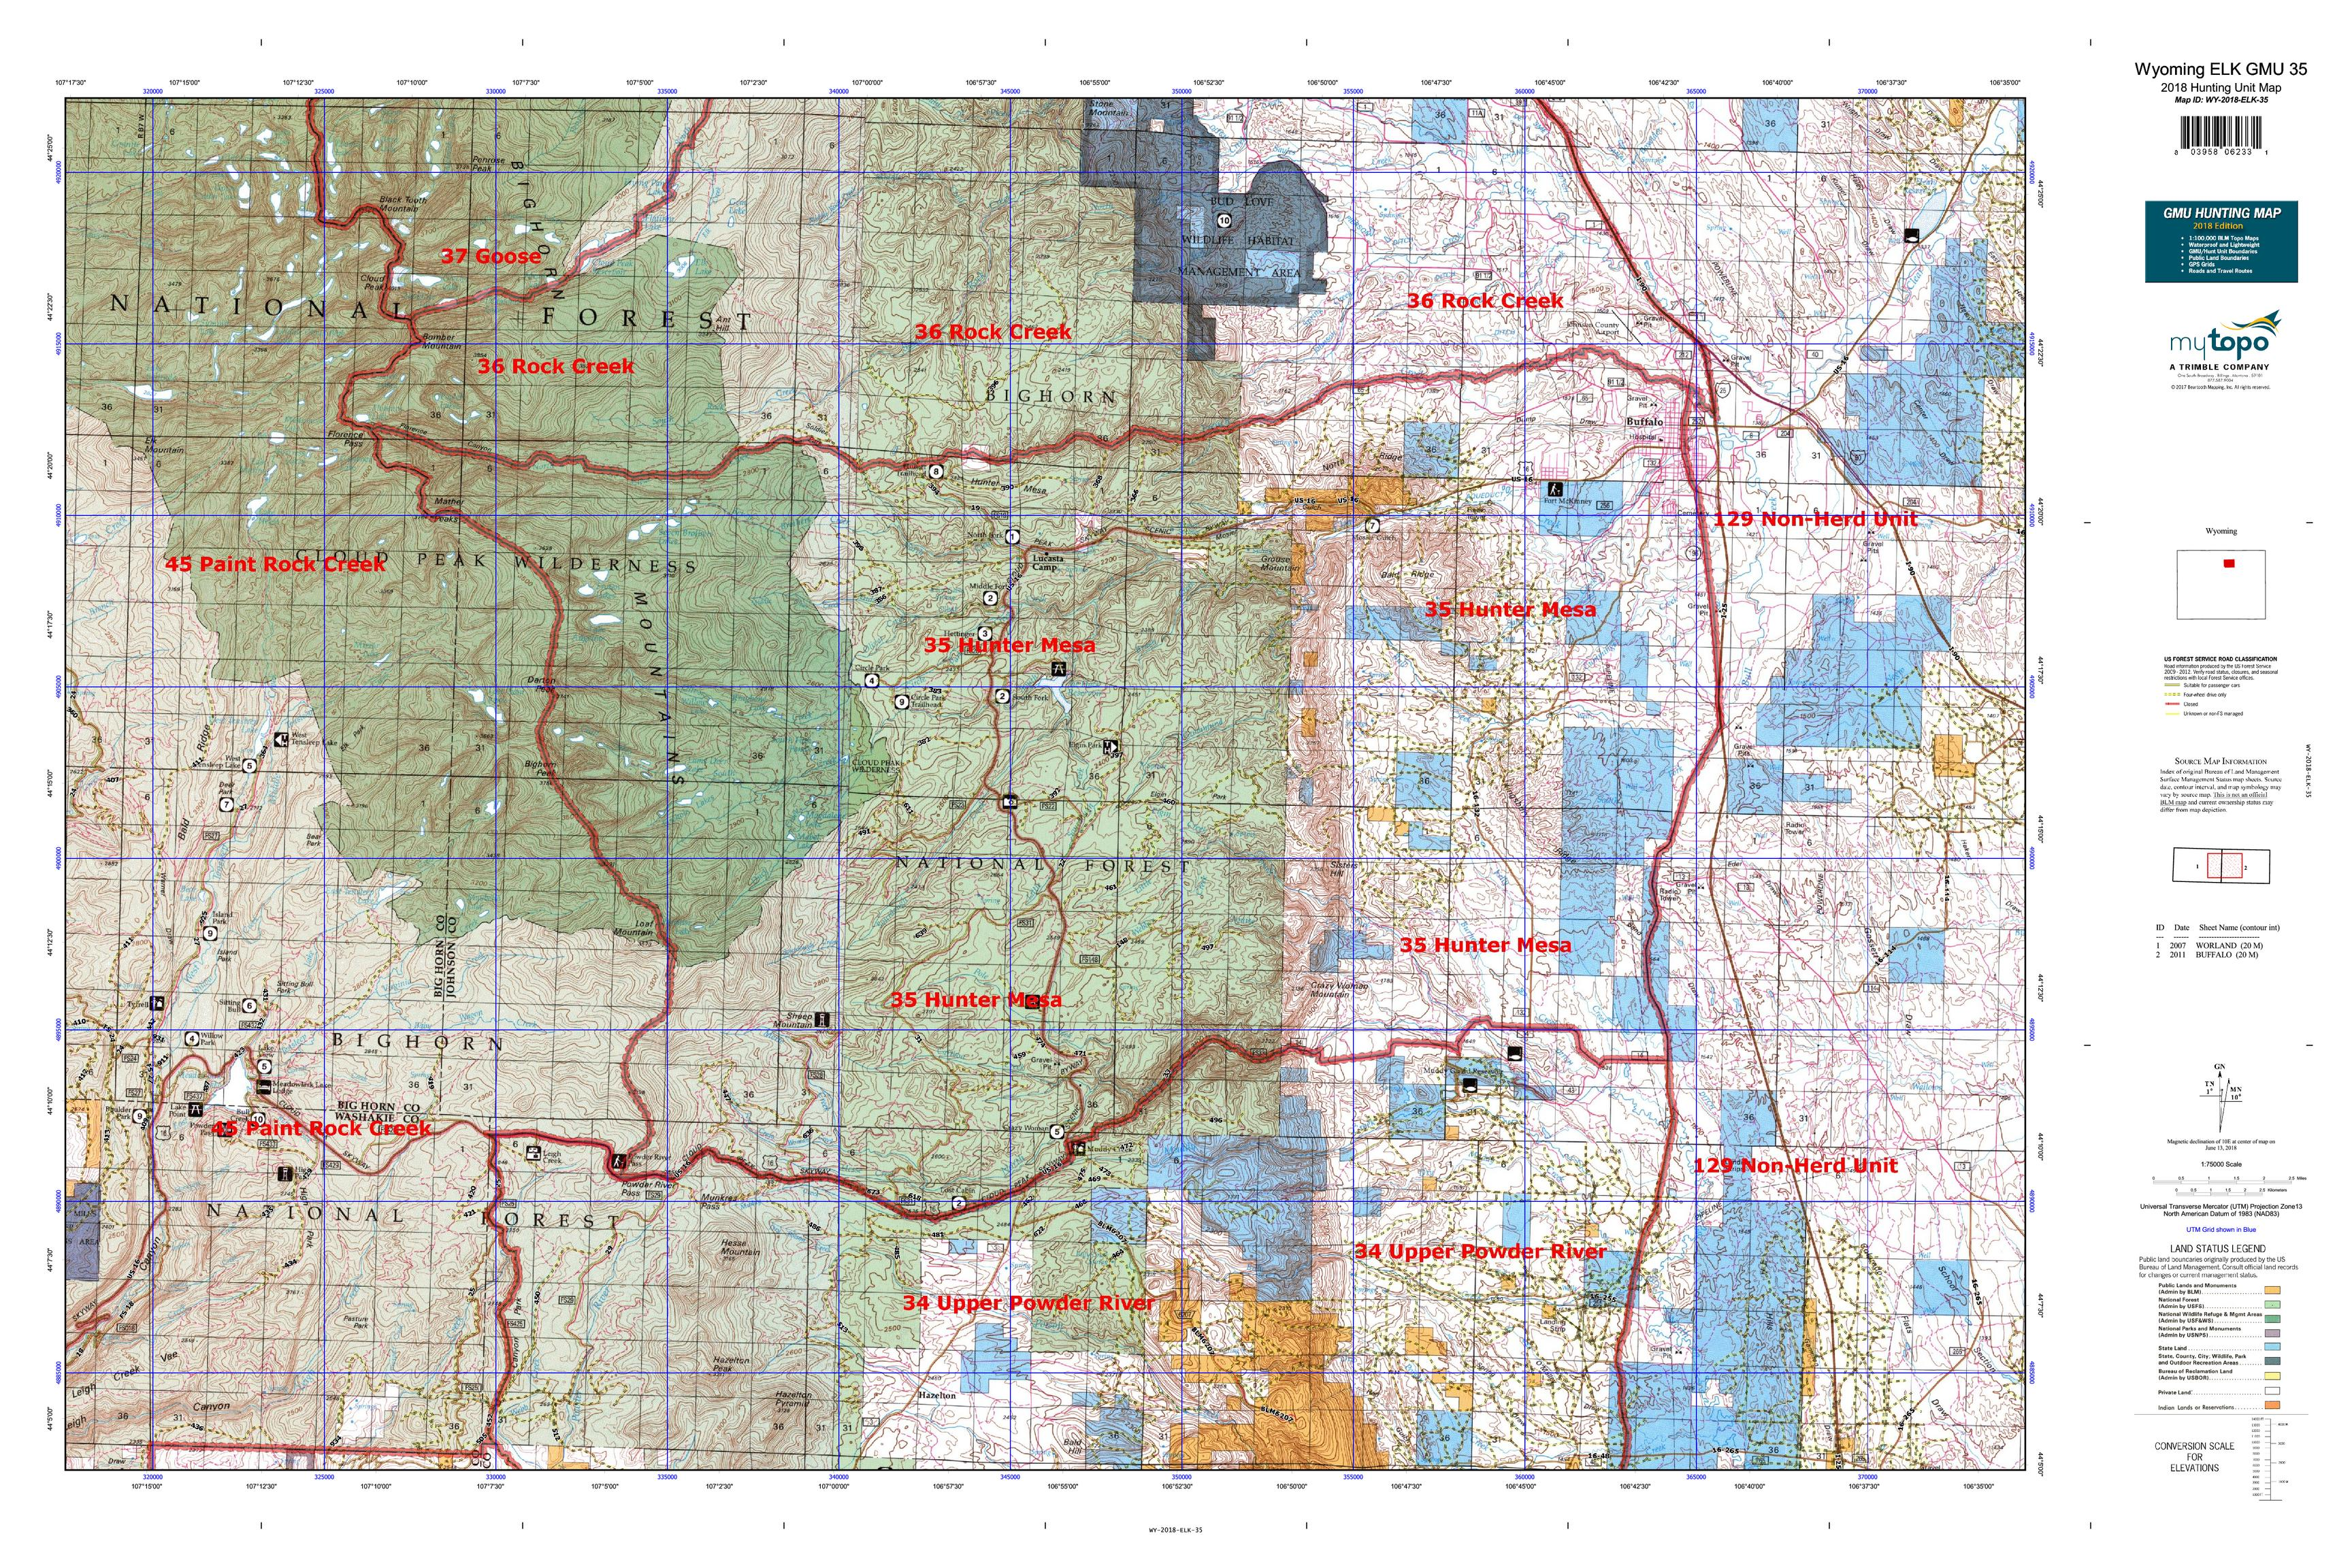 Wyoming ELK GMU 35 Map | MyTopo